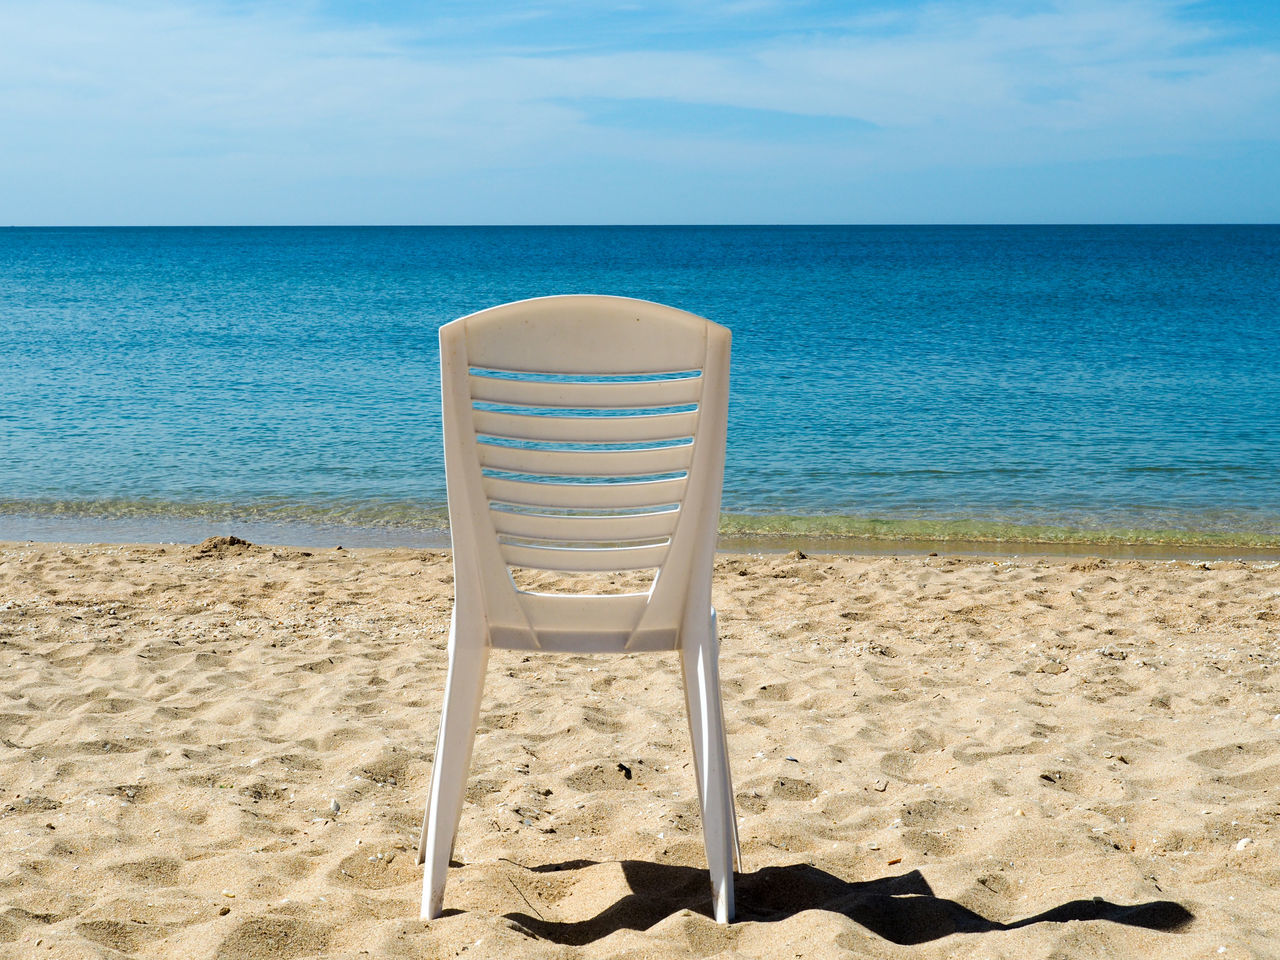 sea, beach, sand, horizon over water, water, nature, sky, tranquil scene, tranquility, beauty in nature, chair, scenics, no people, day, vacations, sunlight, outdoors